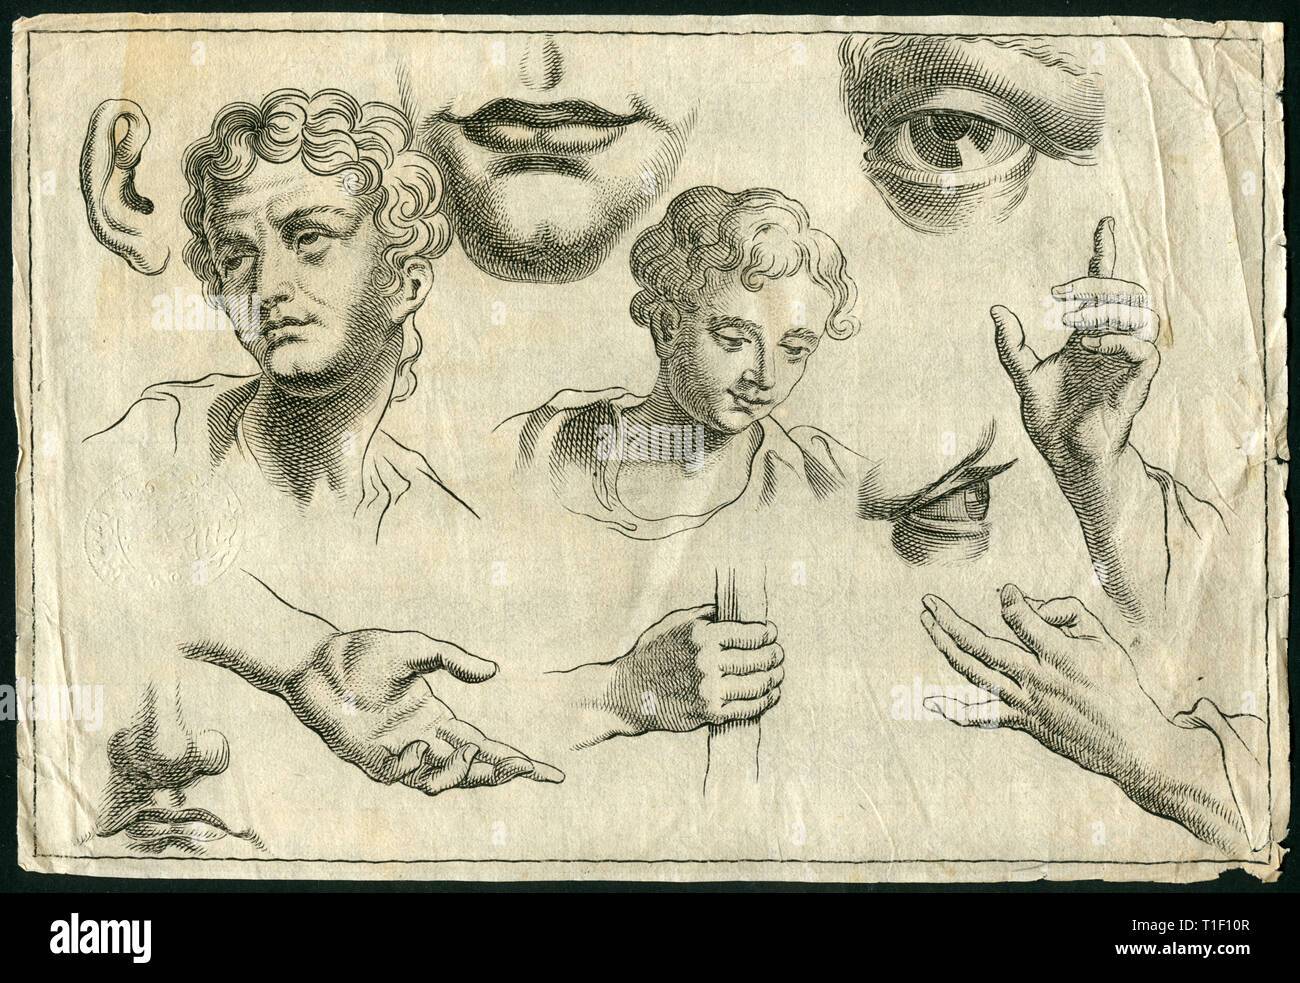 Historical drawing of parts of the body, head, eye, mouth, chin and hand, copperplate engraving from about 1700., Artist's Copyright has not to be cleared - Stock Image